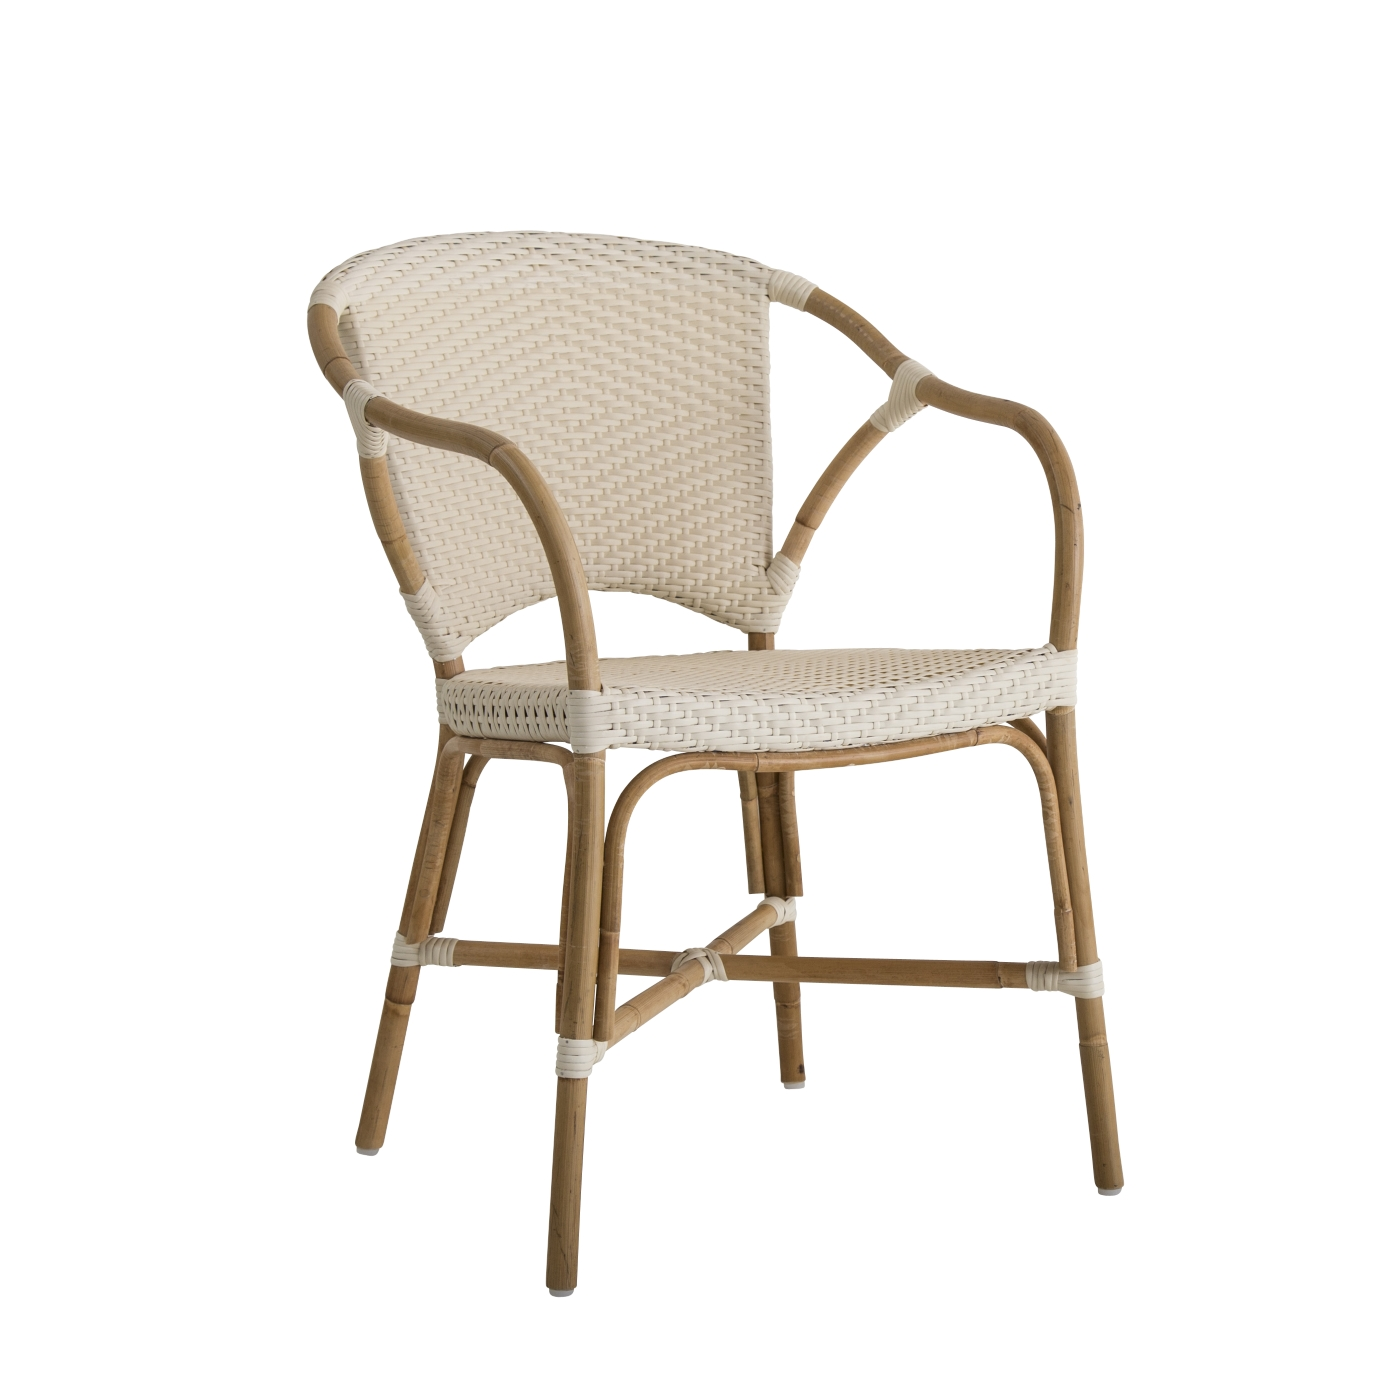 Valerie chair karm Affäire ivory, Sika-design